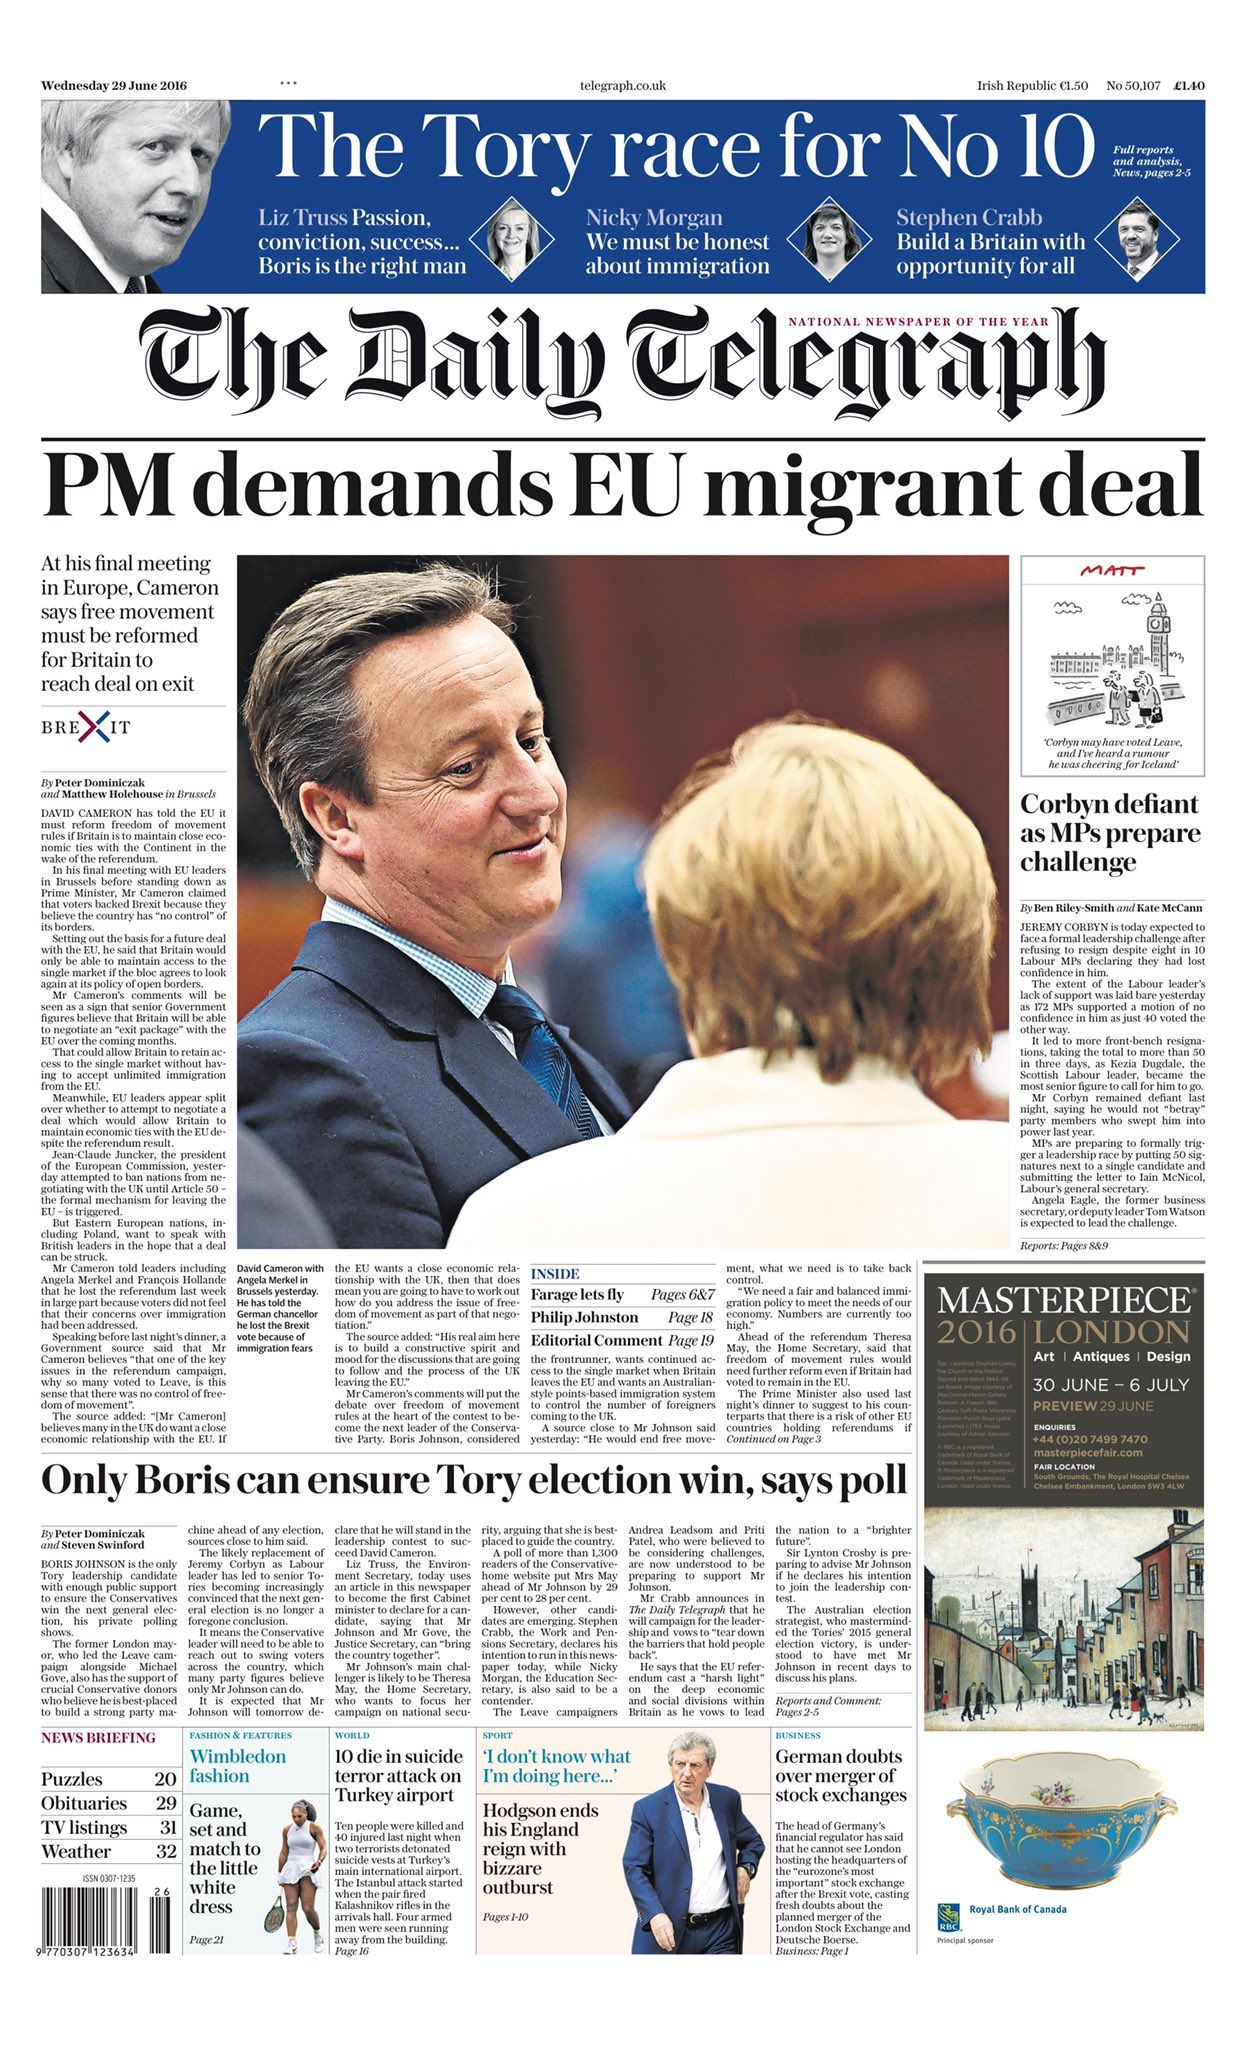 Wednesday's Daily Telegraph front page: PM demands EU migrant deal #Tomorrowspaperstoday #bbcpapers https://t.co/jJUyeMa59v